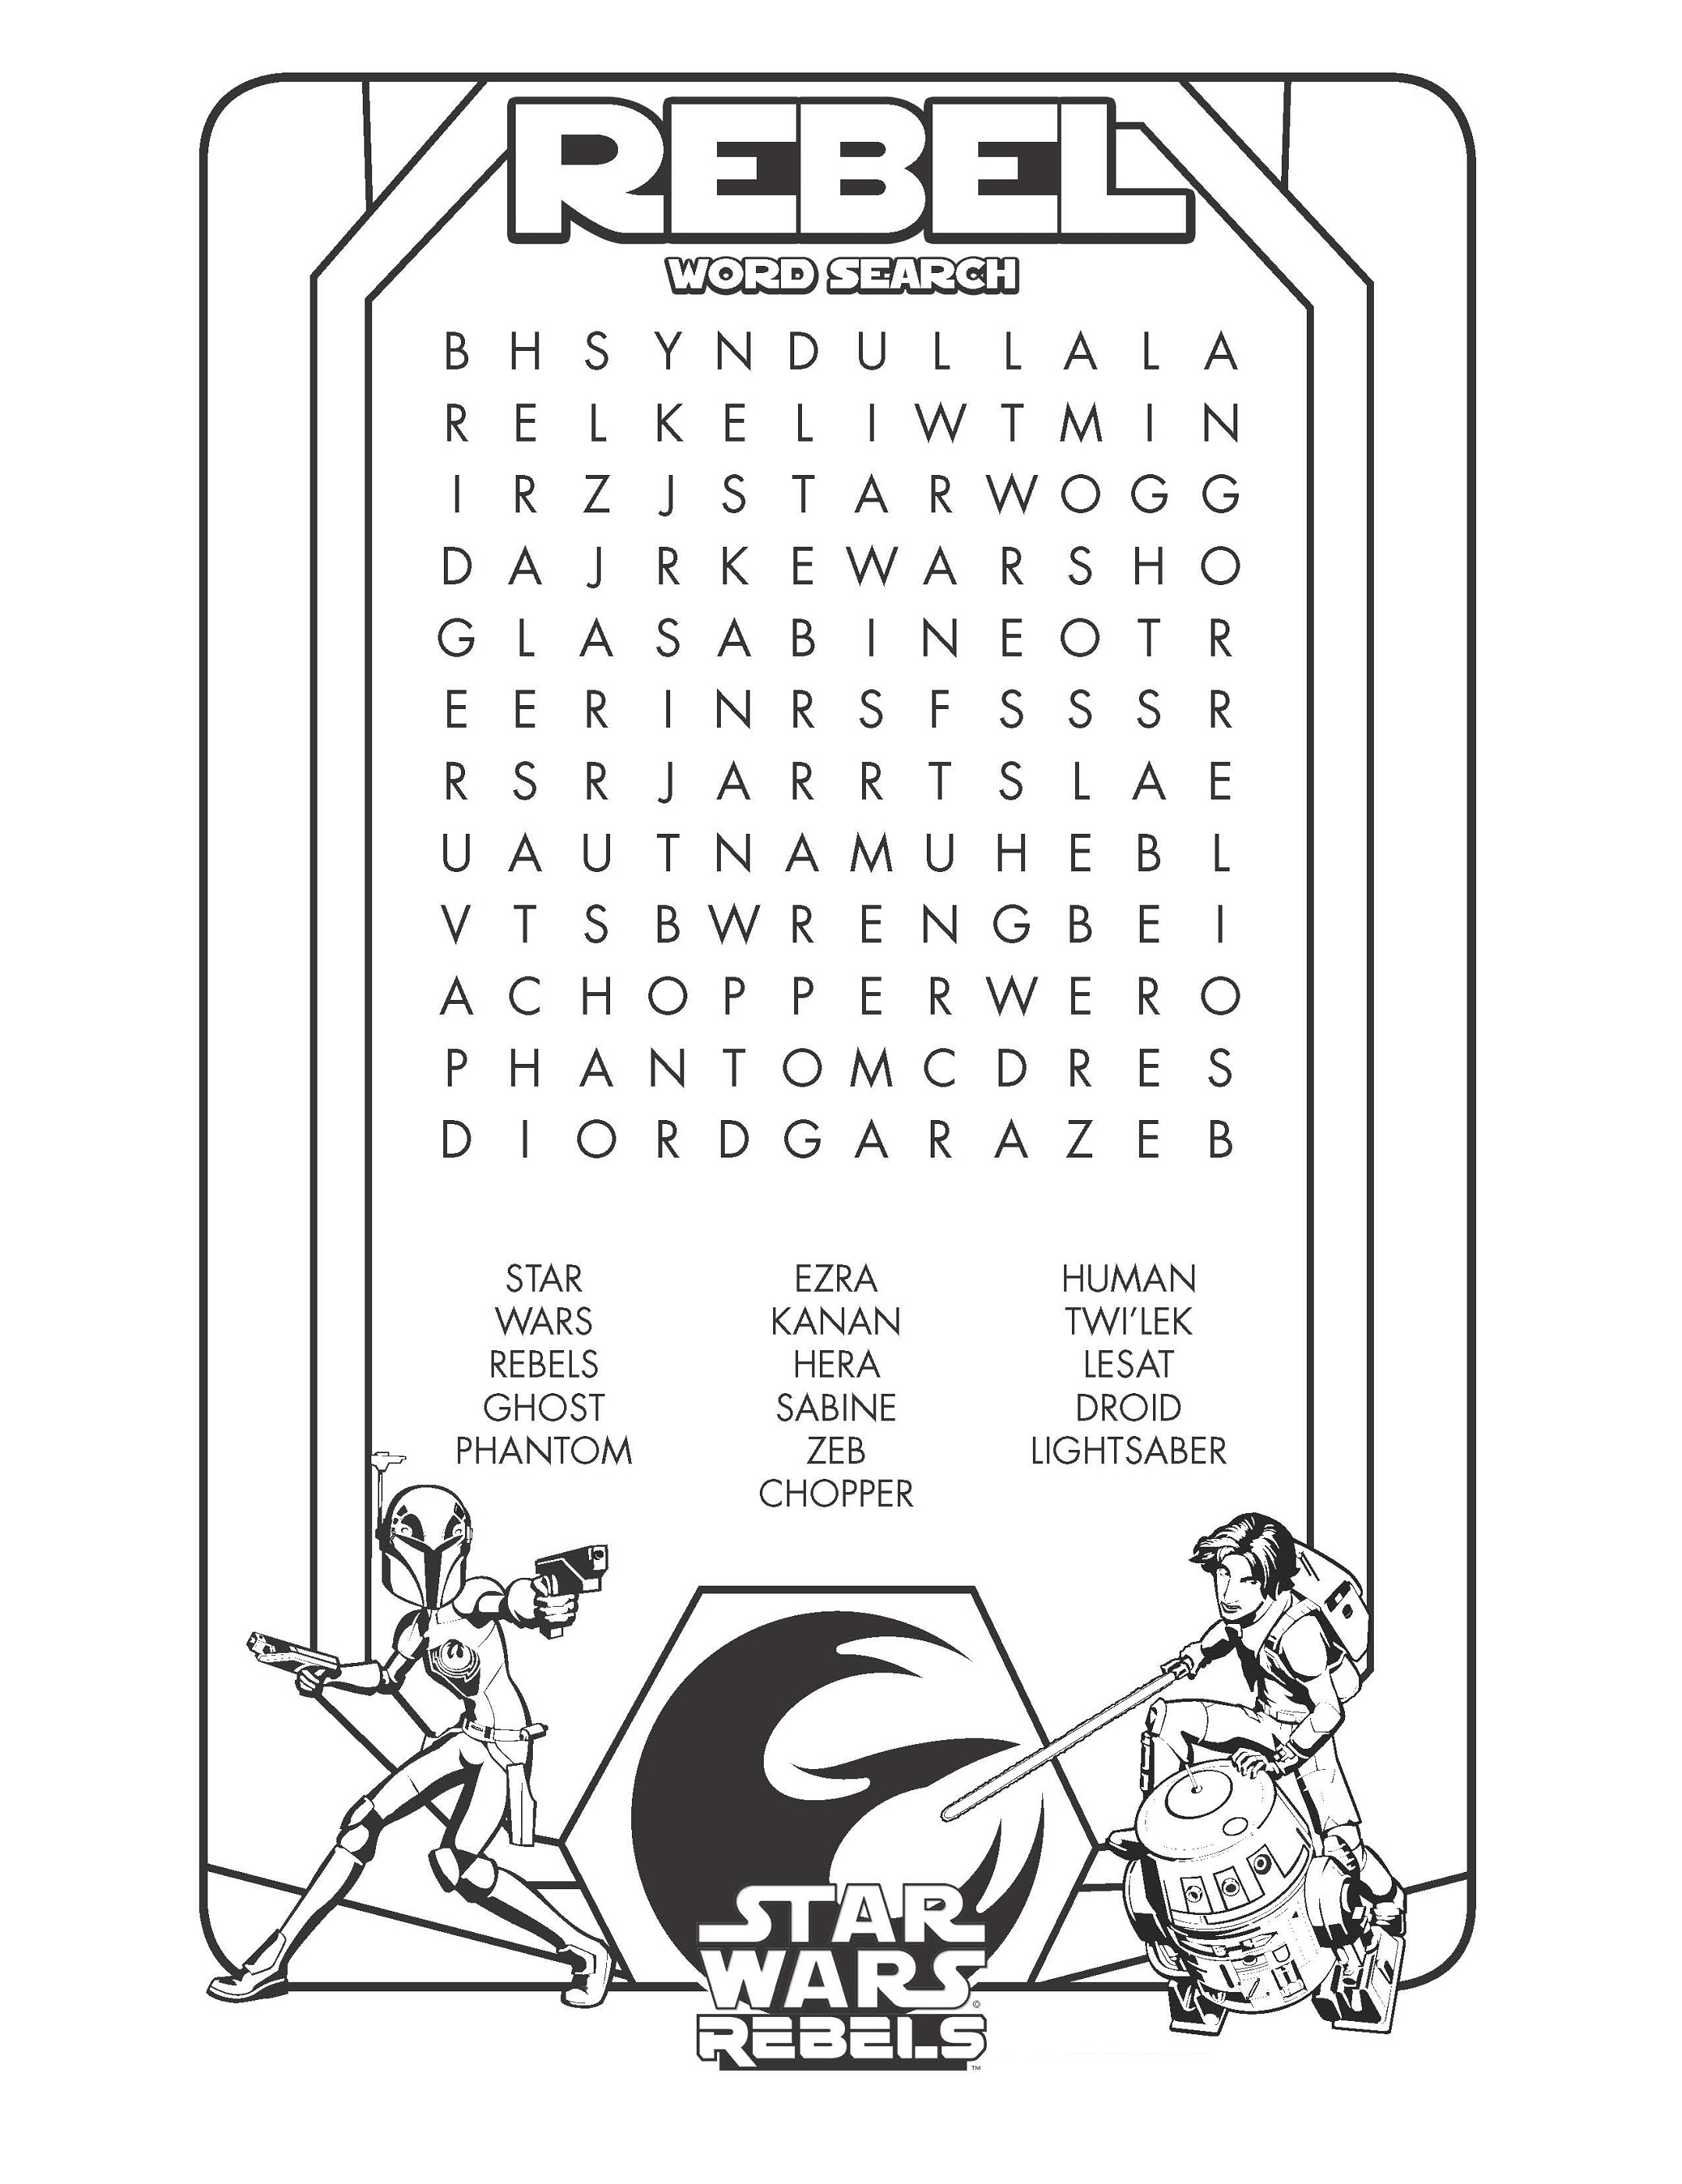 star wars word search easy